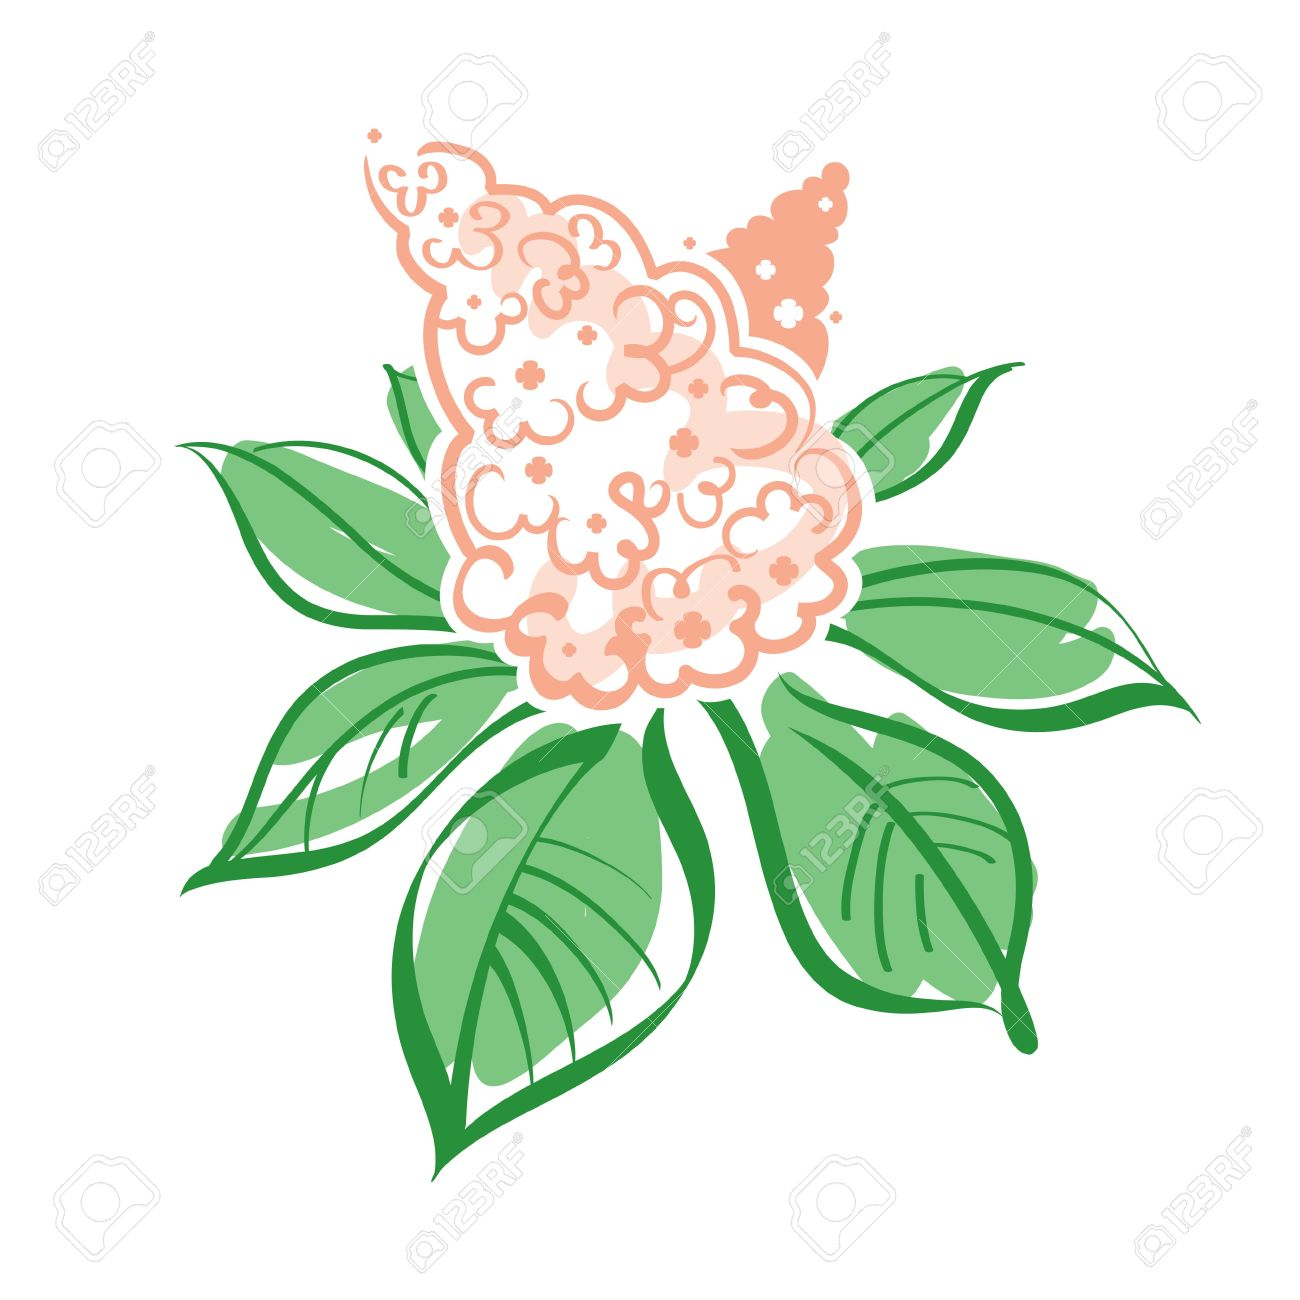 Vector Illustration Of Chestnut Flowers And Leaves Royalty Free.